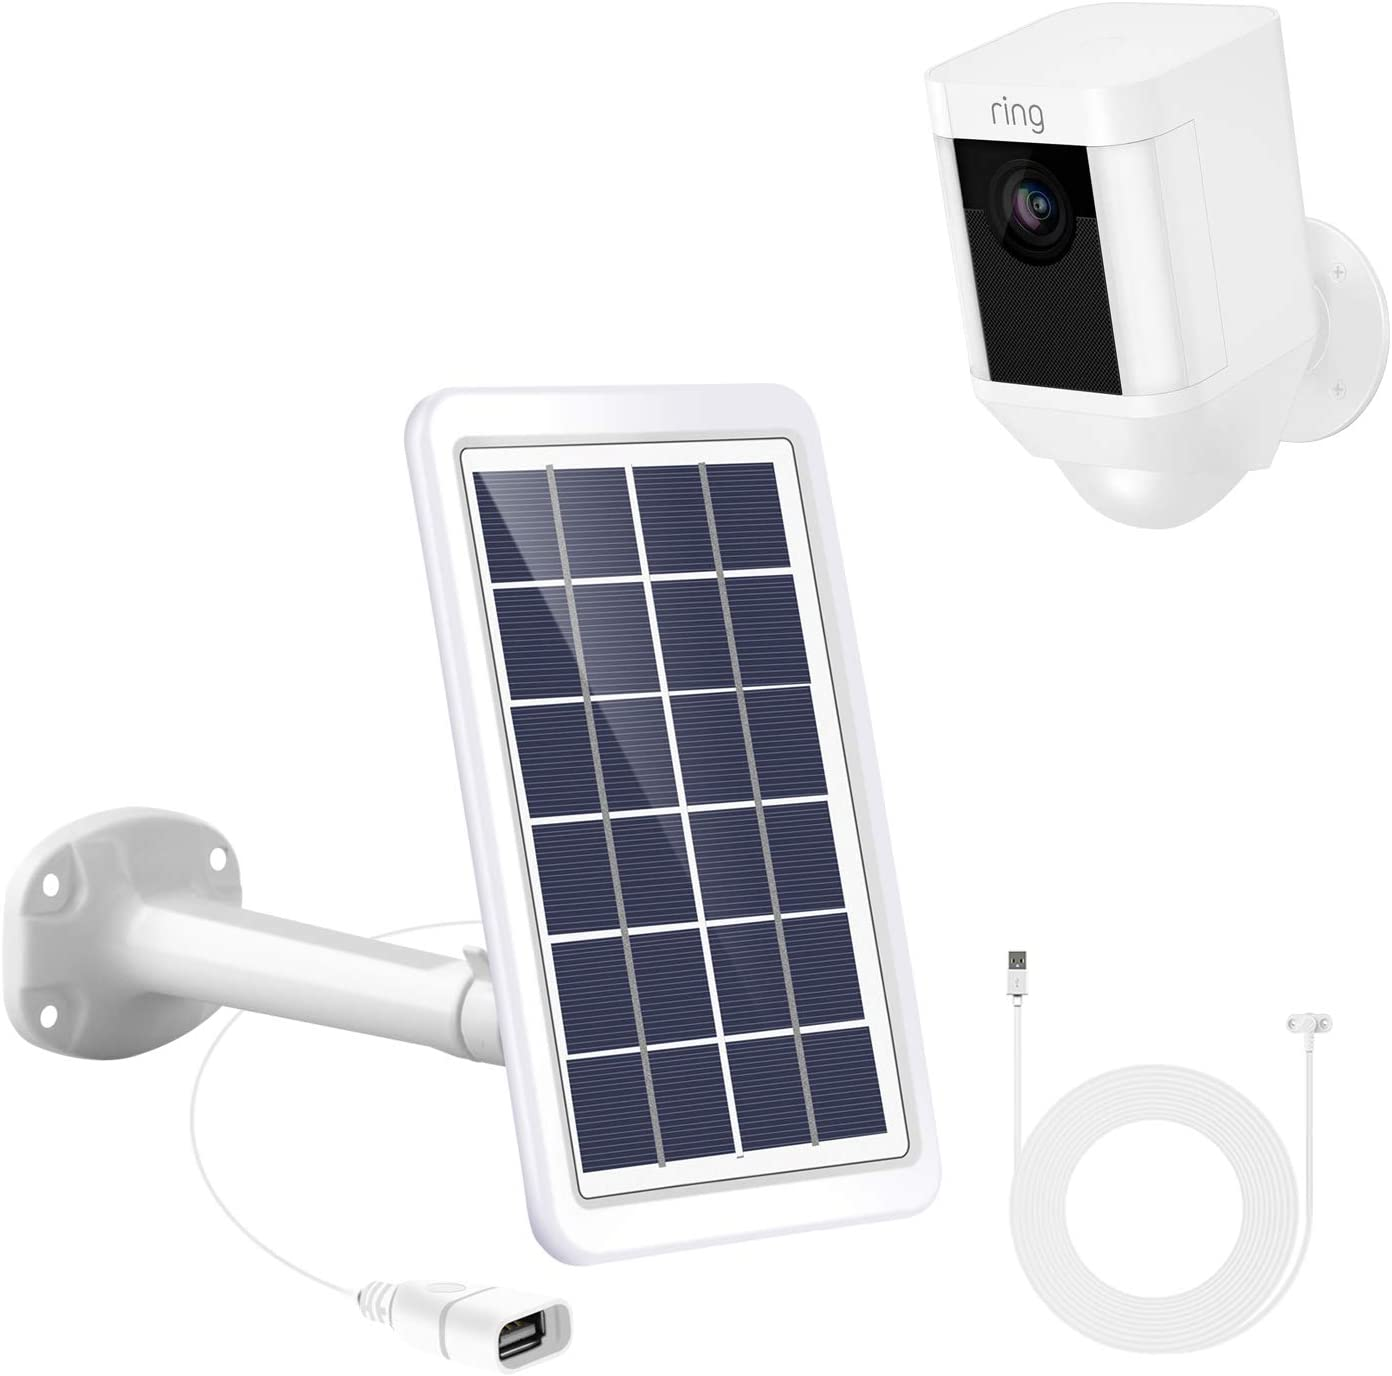 3.6 m// 1... Skylety Solar Panel for Ring Spotlight Cam with Security Wall Mount